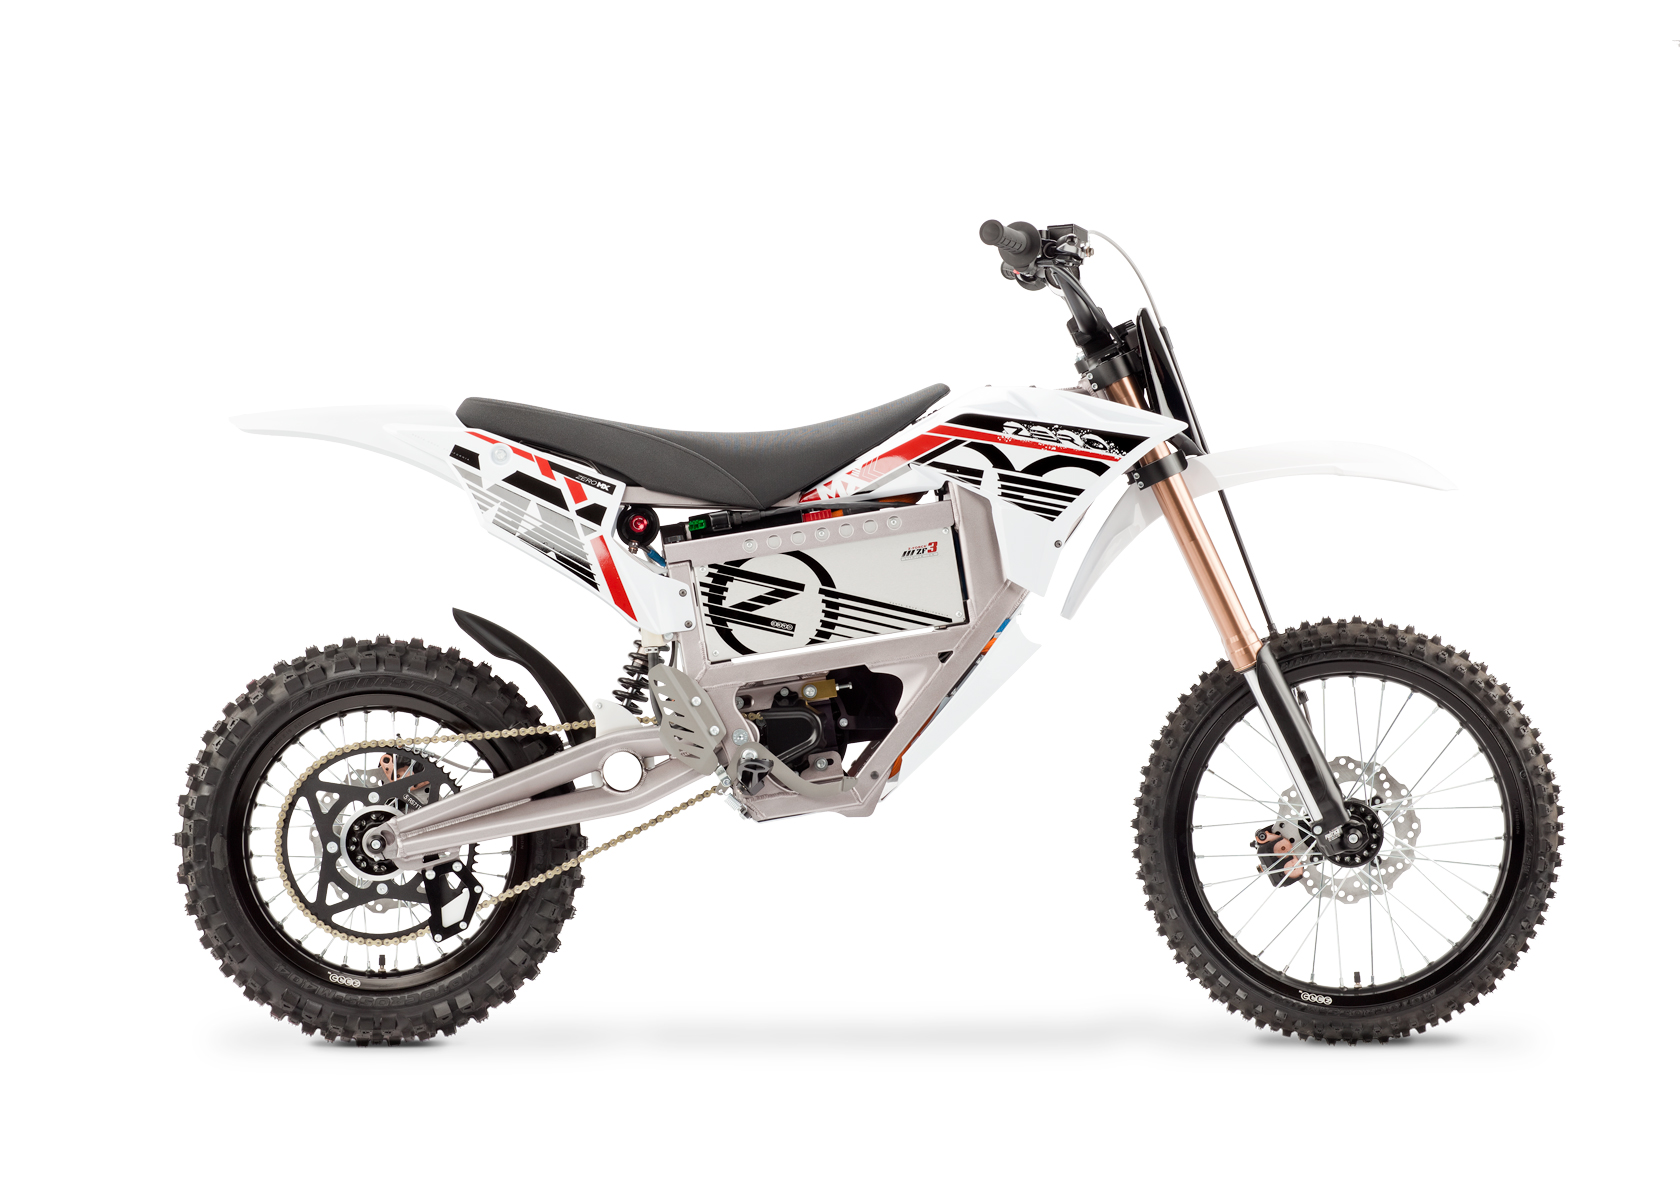 '.2012 Zero MX Electric Motorcycle: Right Profile, White Background.'